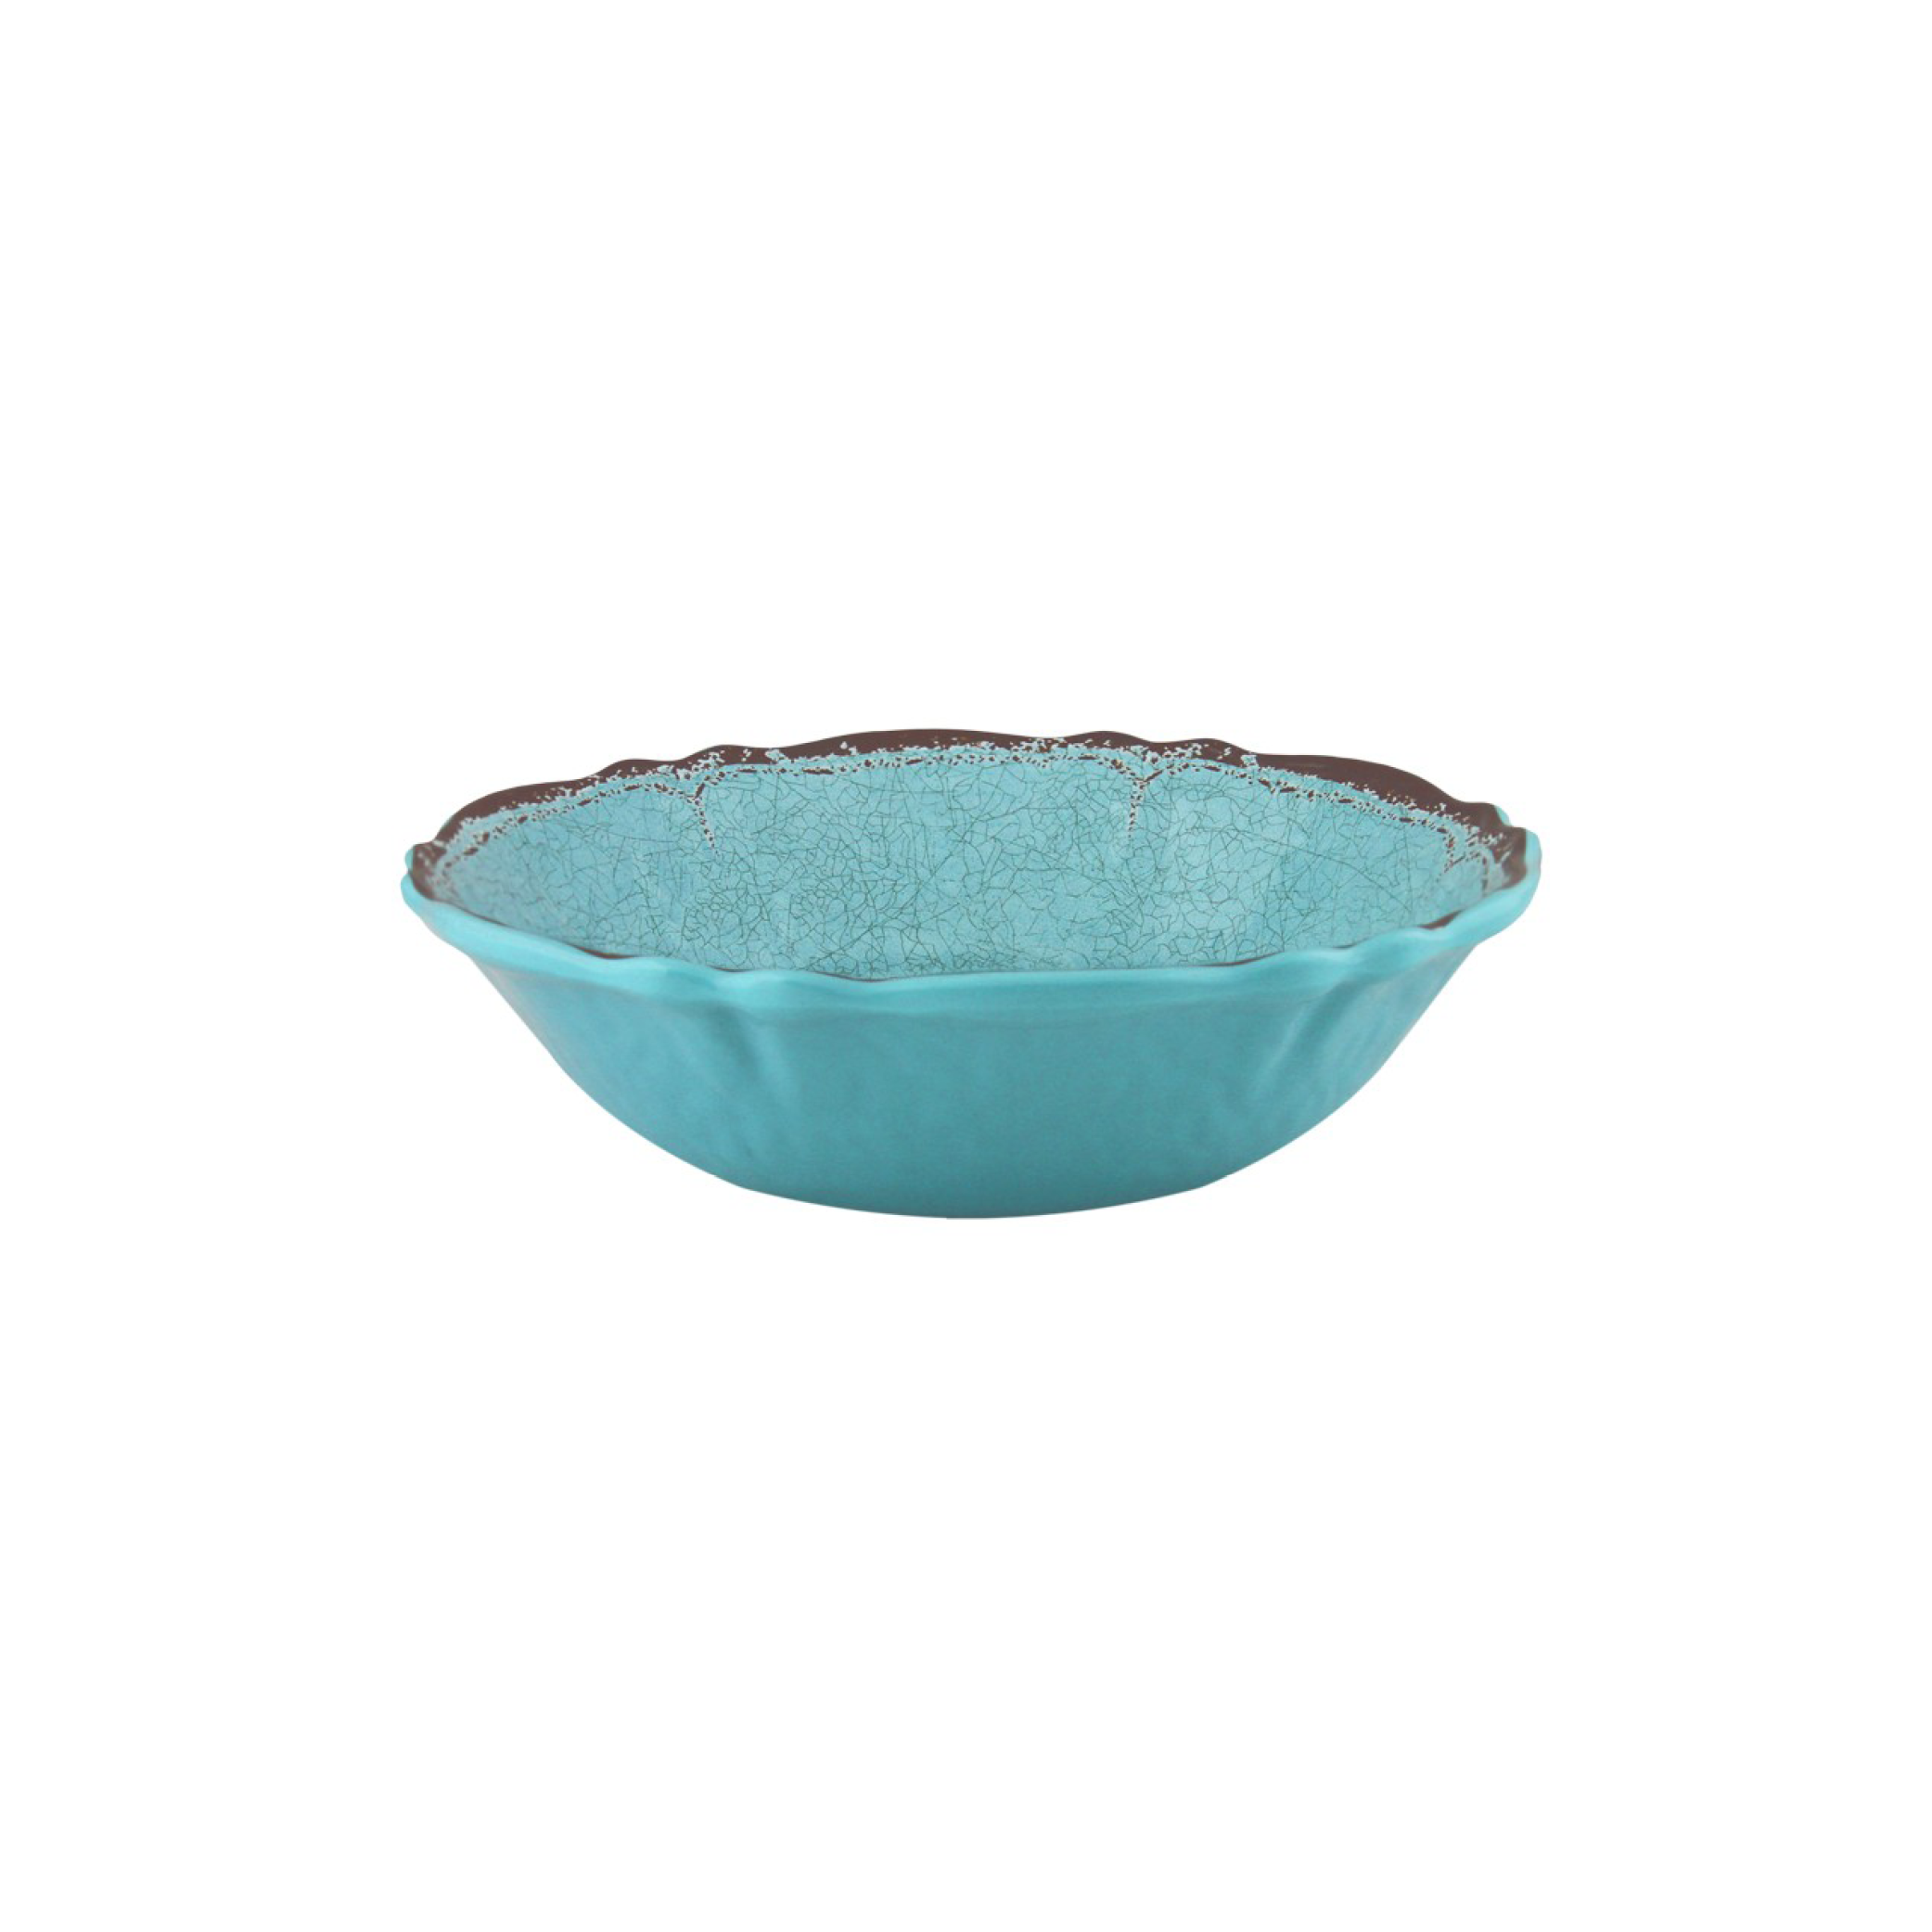 Antiqua Turquoise Cereal Bowl $14.95   Wants 8 Has 8 Needs 0